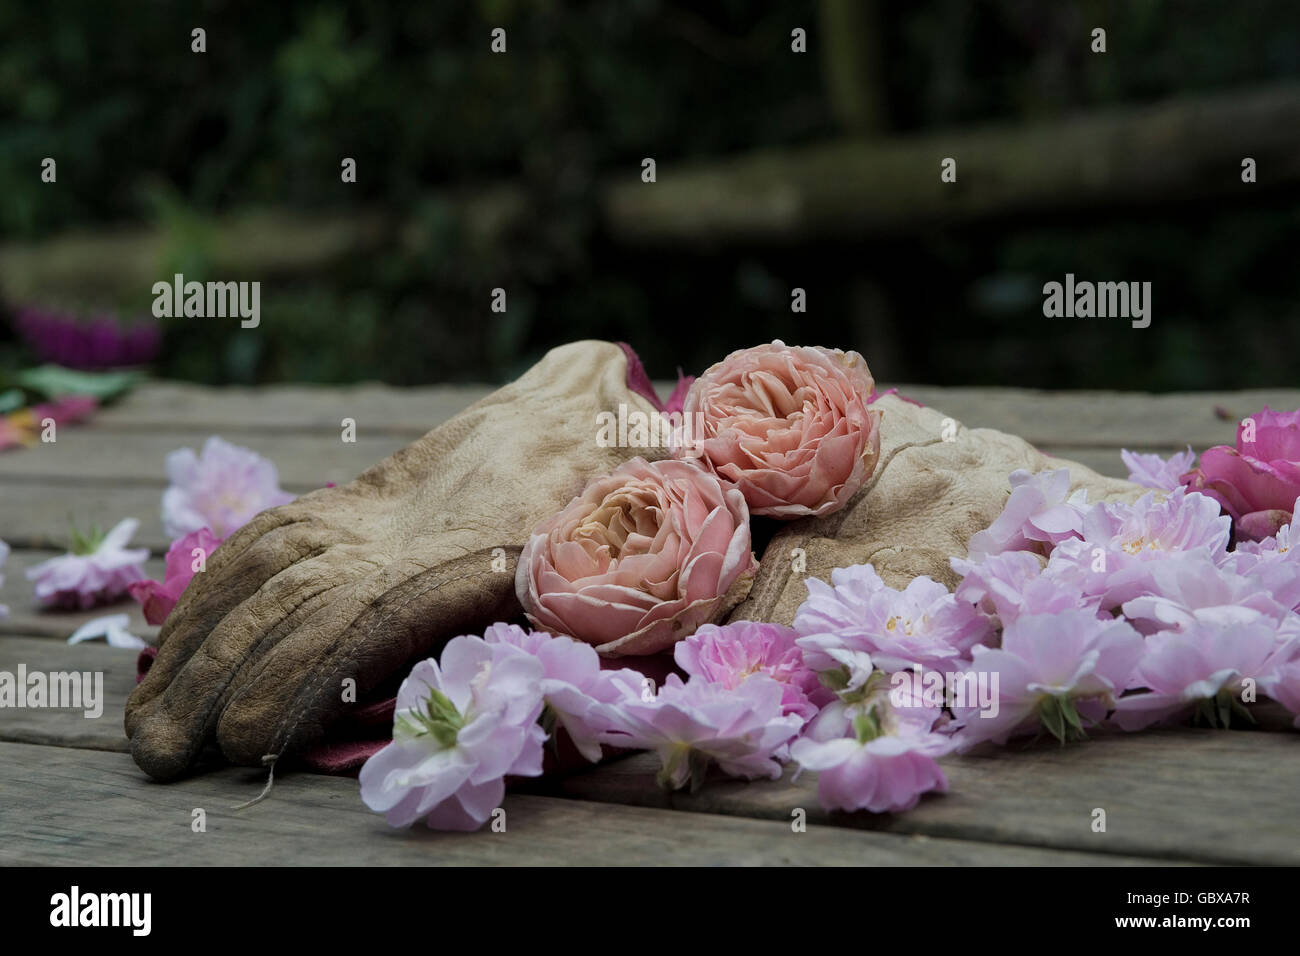 gardening gloves left from cutting the heads off roses - Stock Image